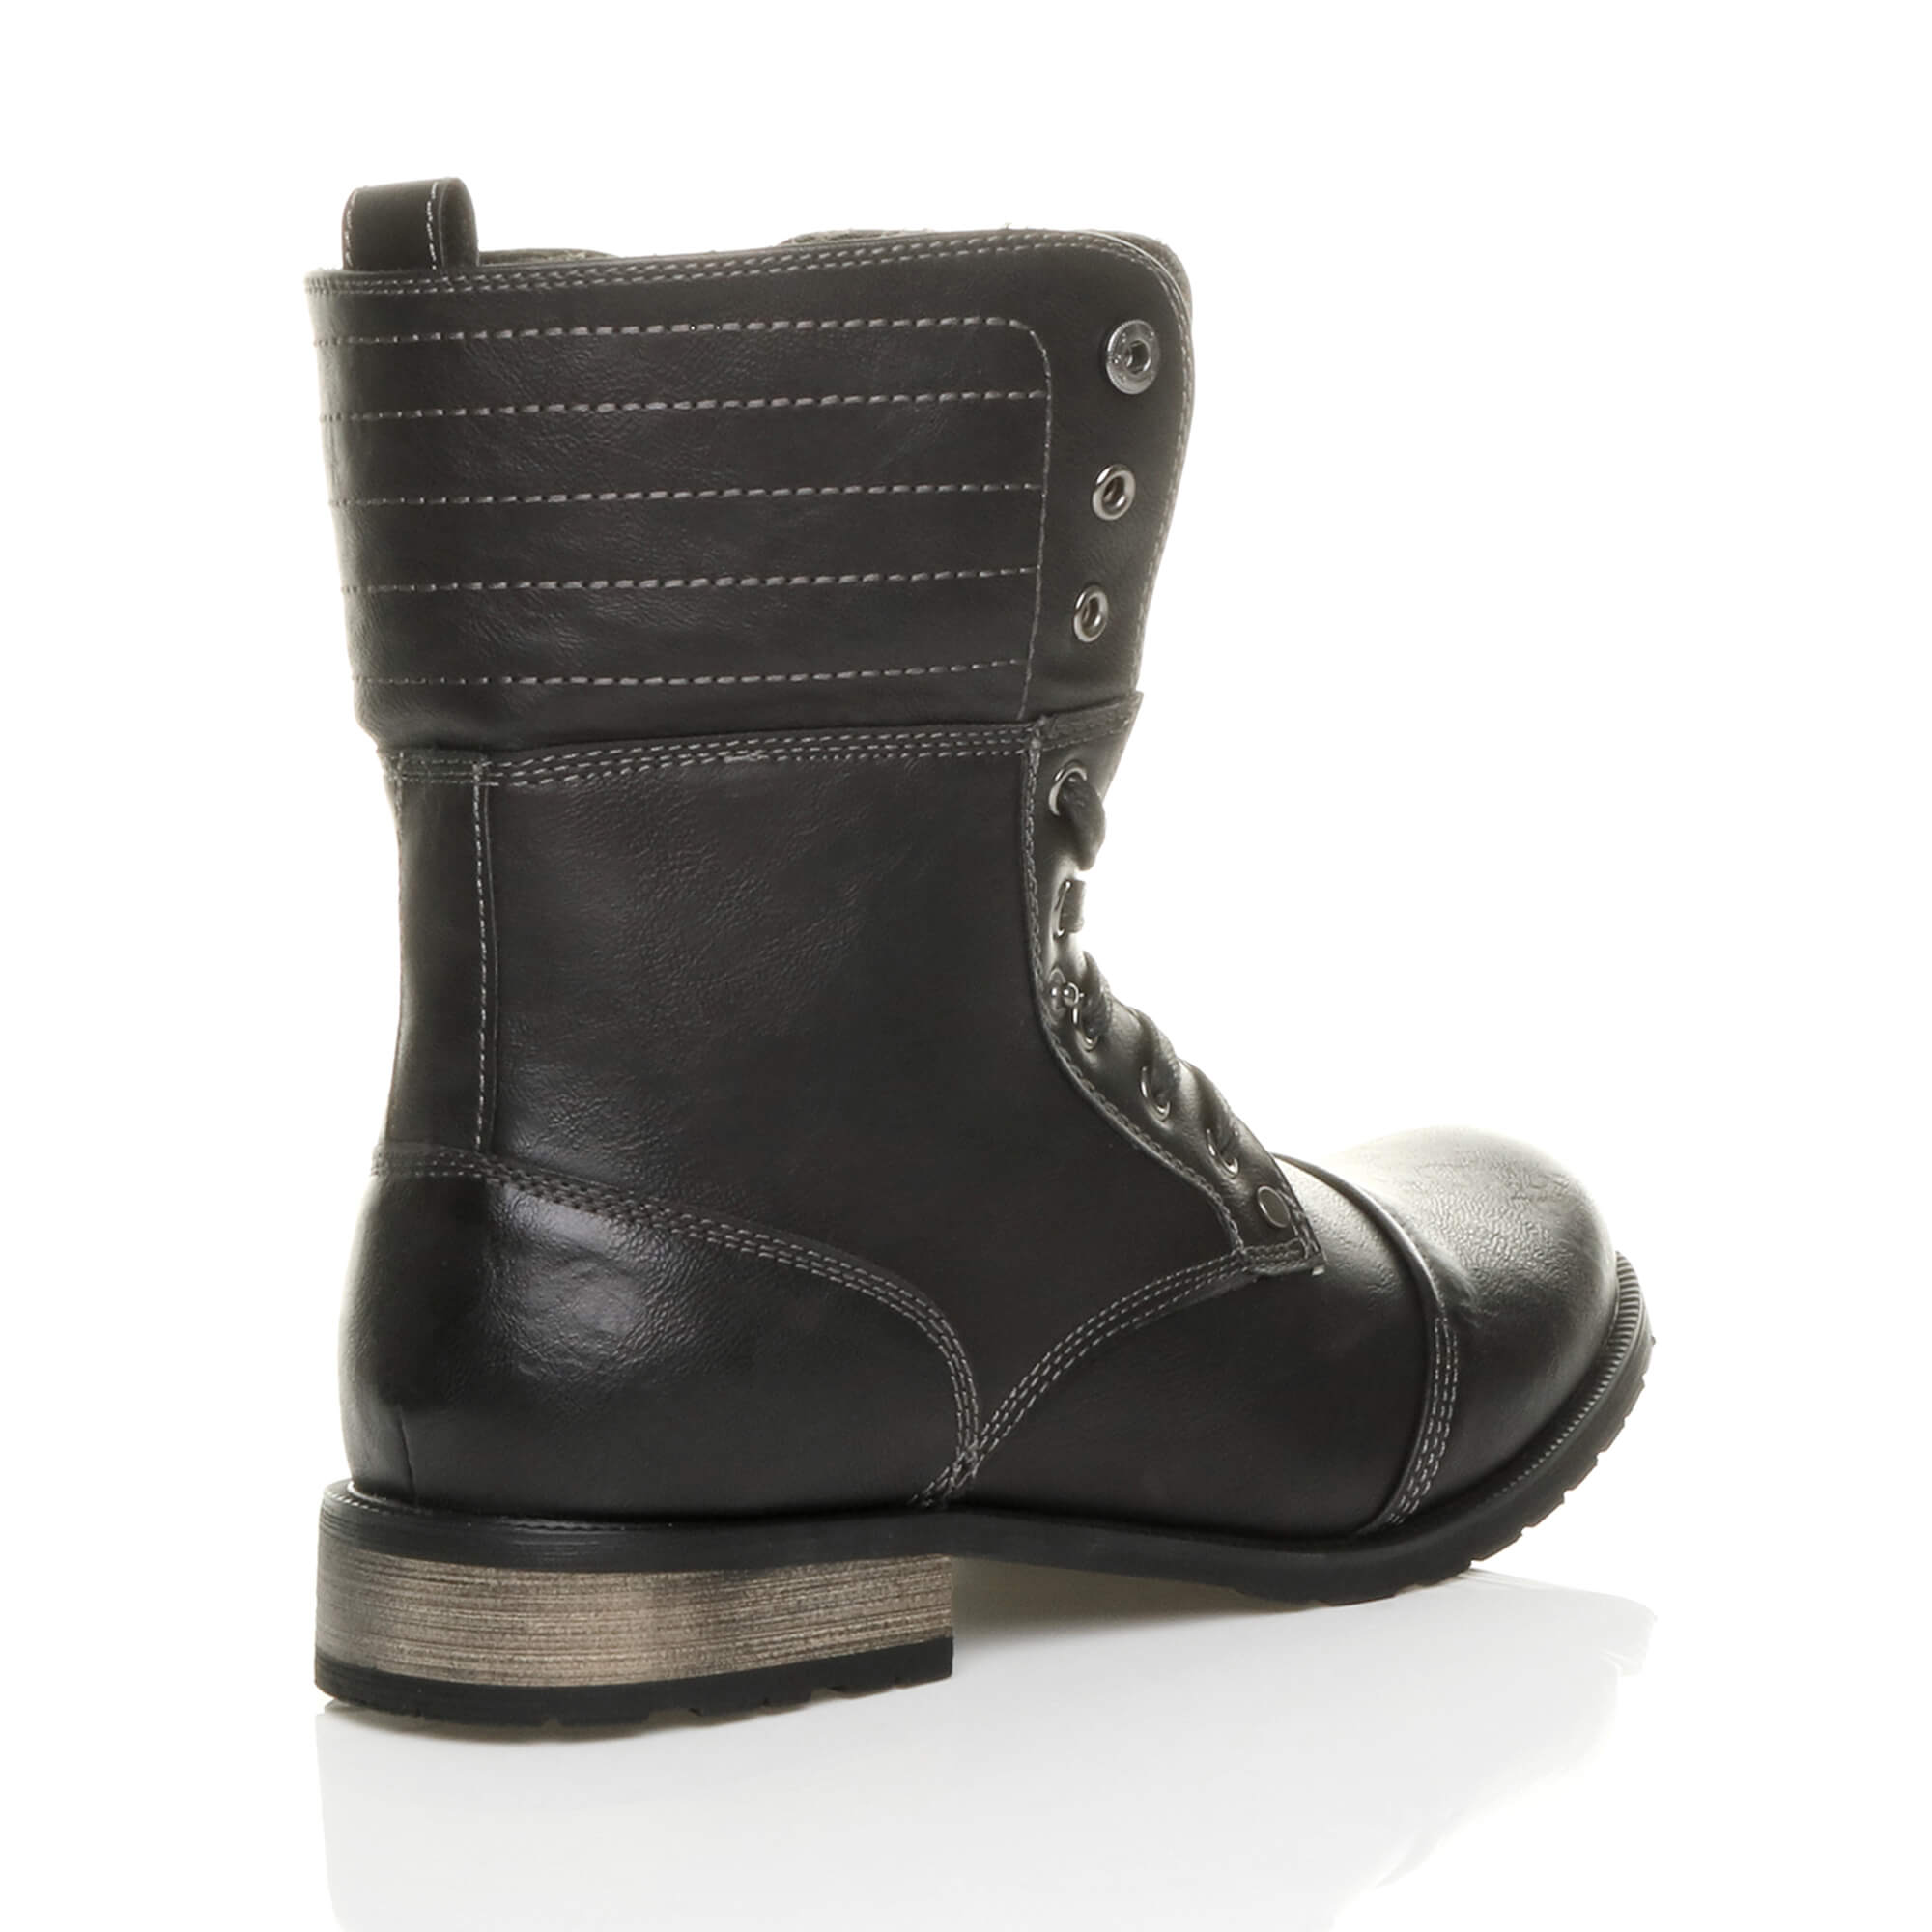 Mens-lace-up-low-heel-flat-fold-over-padded-cuff-military-ankle-boots-size miniatuur 5